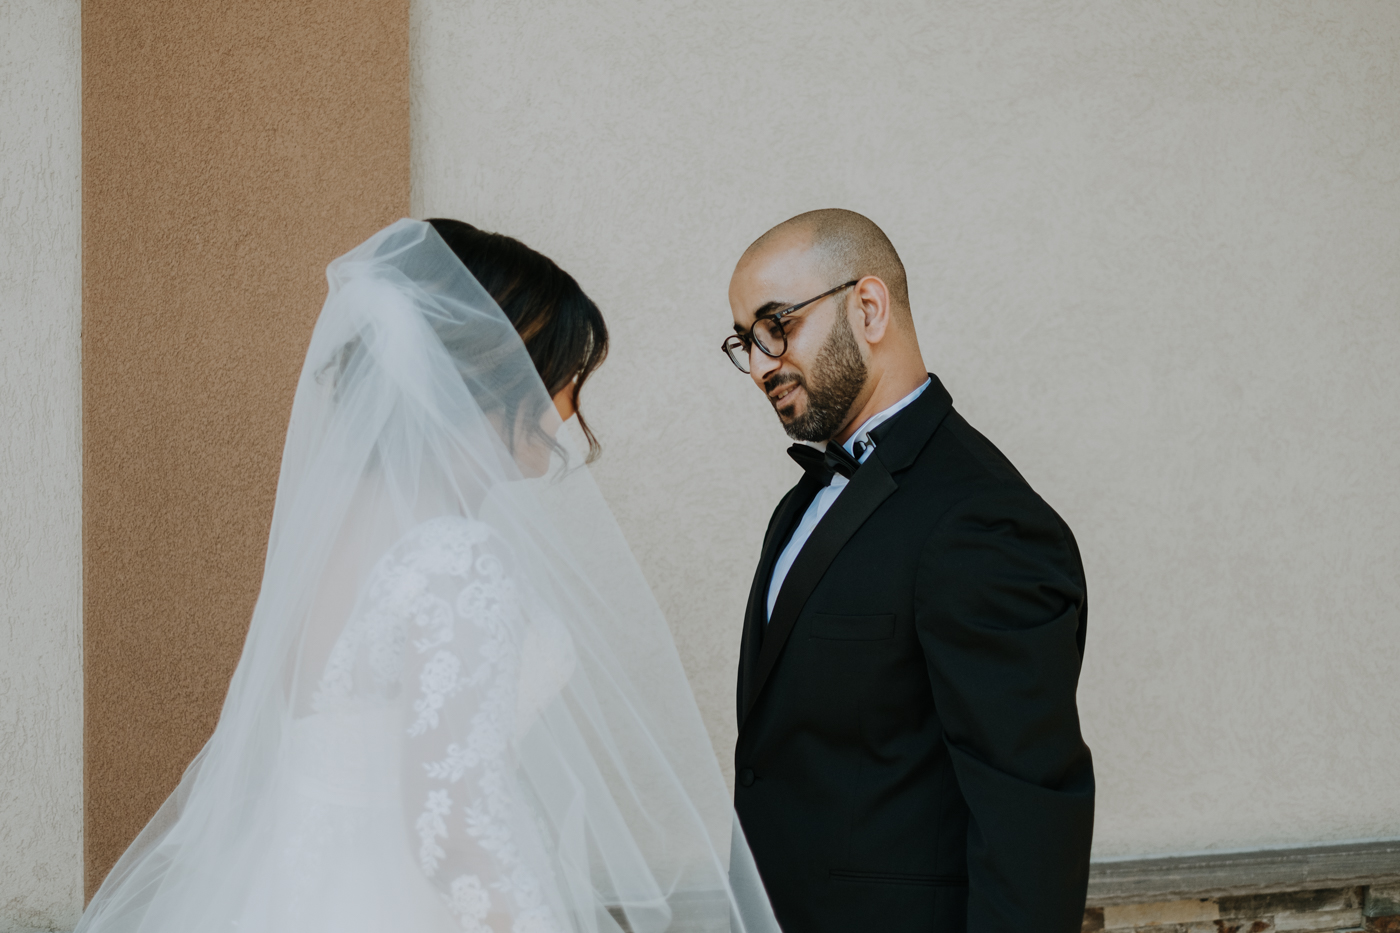 tampa wedding photography | brooklyn wedding photography | noura + amr